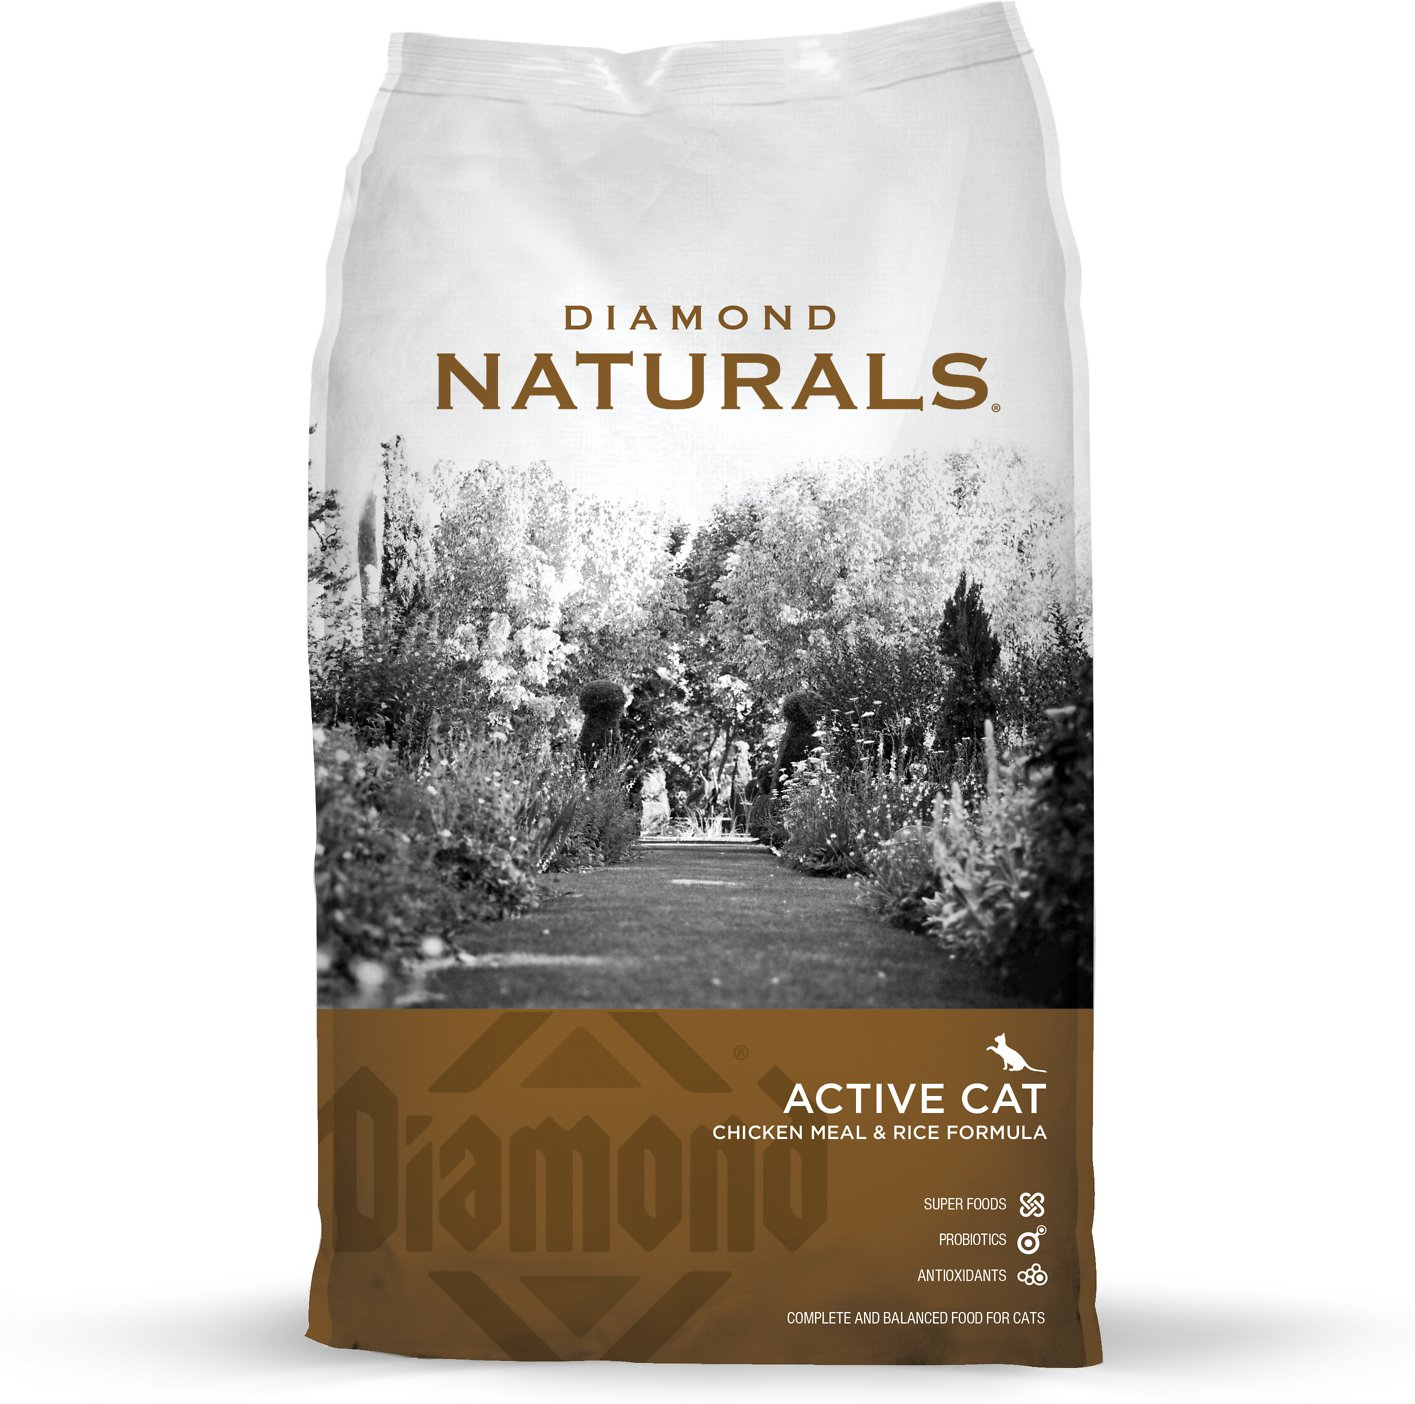 Diamond naturals active cat gordon 39 s feed pet for Fish oil para que sirve